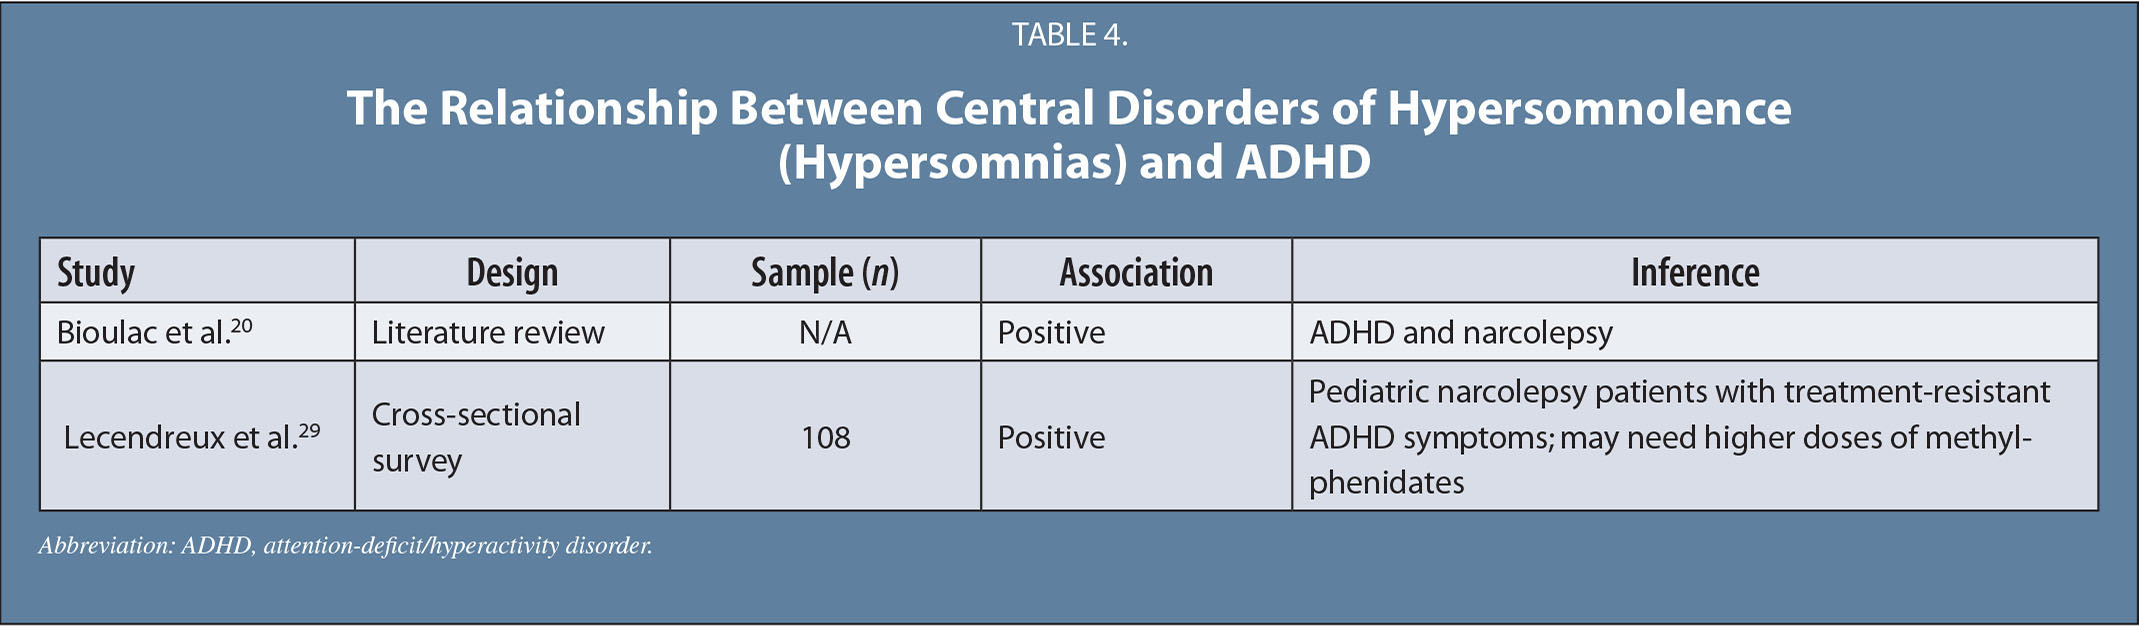 The Relationship Between Central Disorders of Hypersomnolence (Hypersomnias) and ADHD